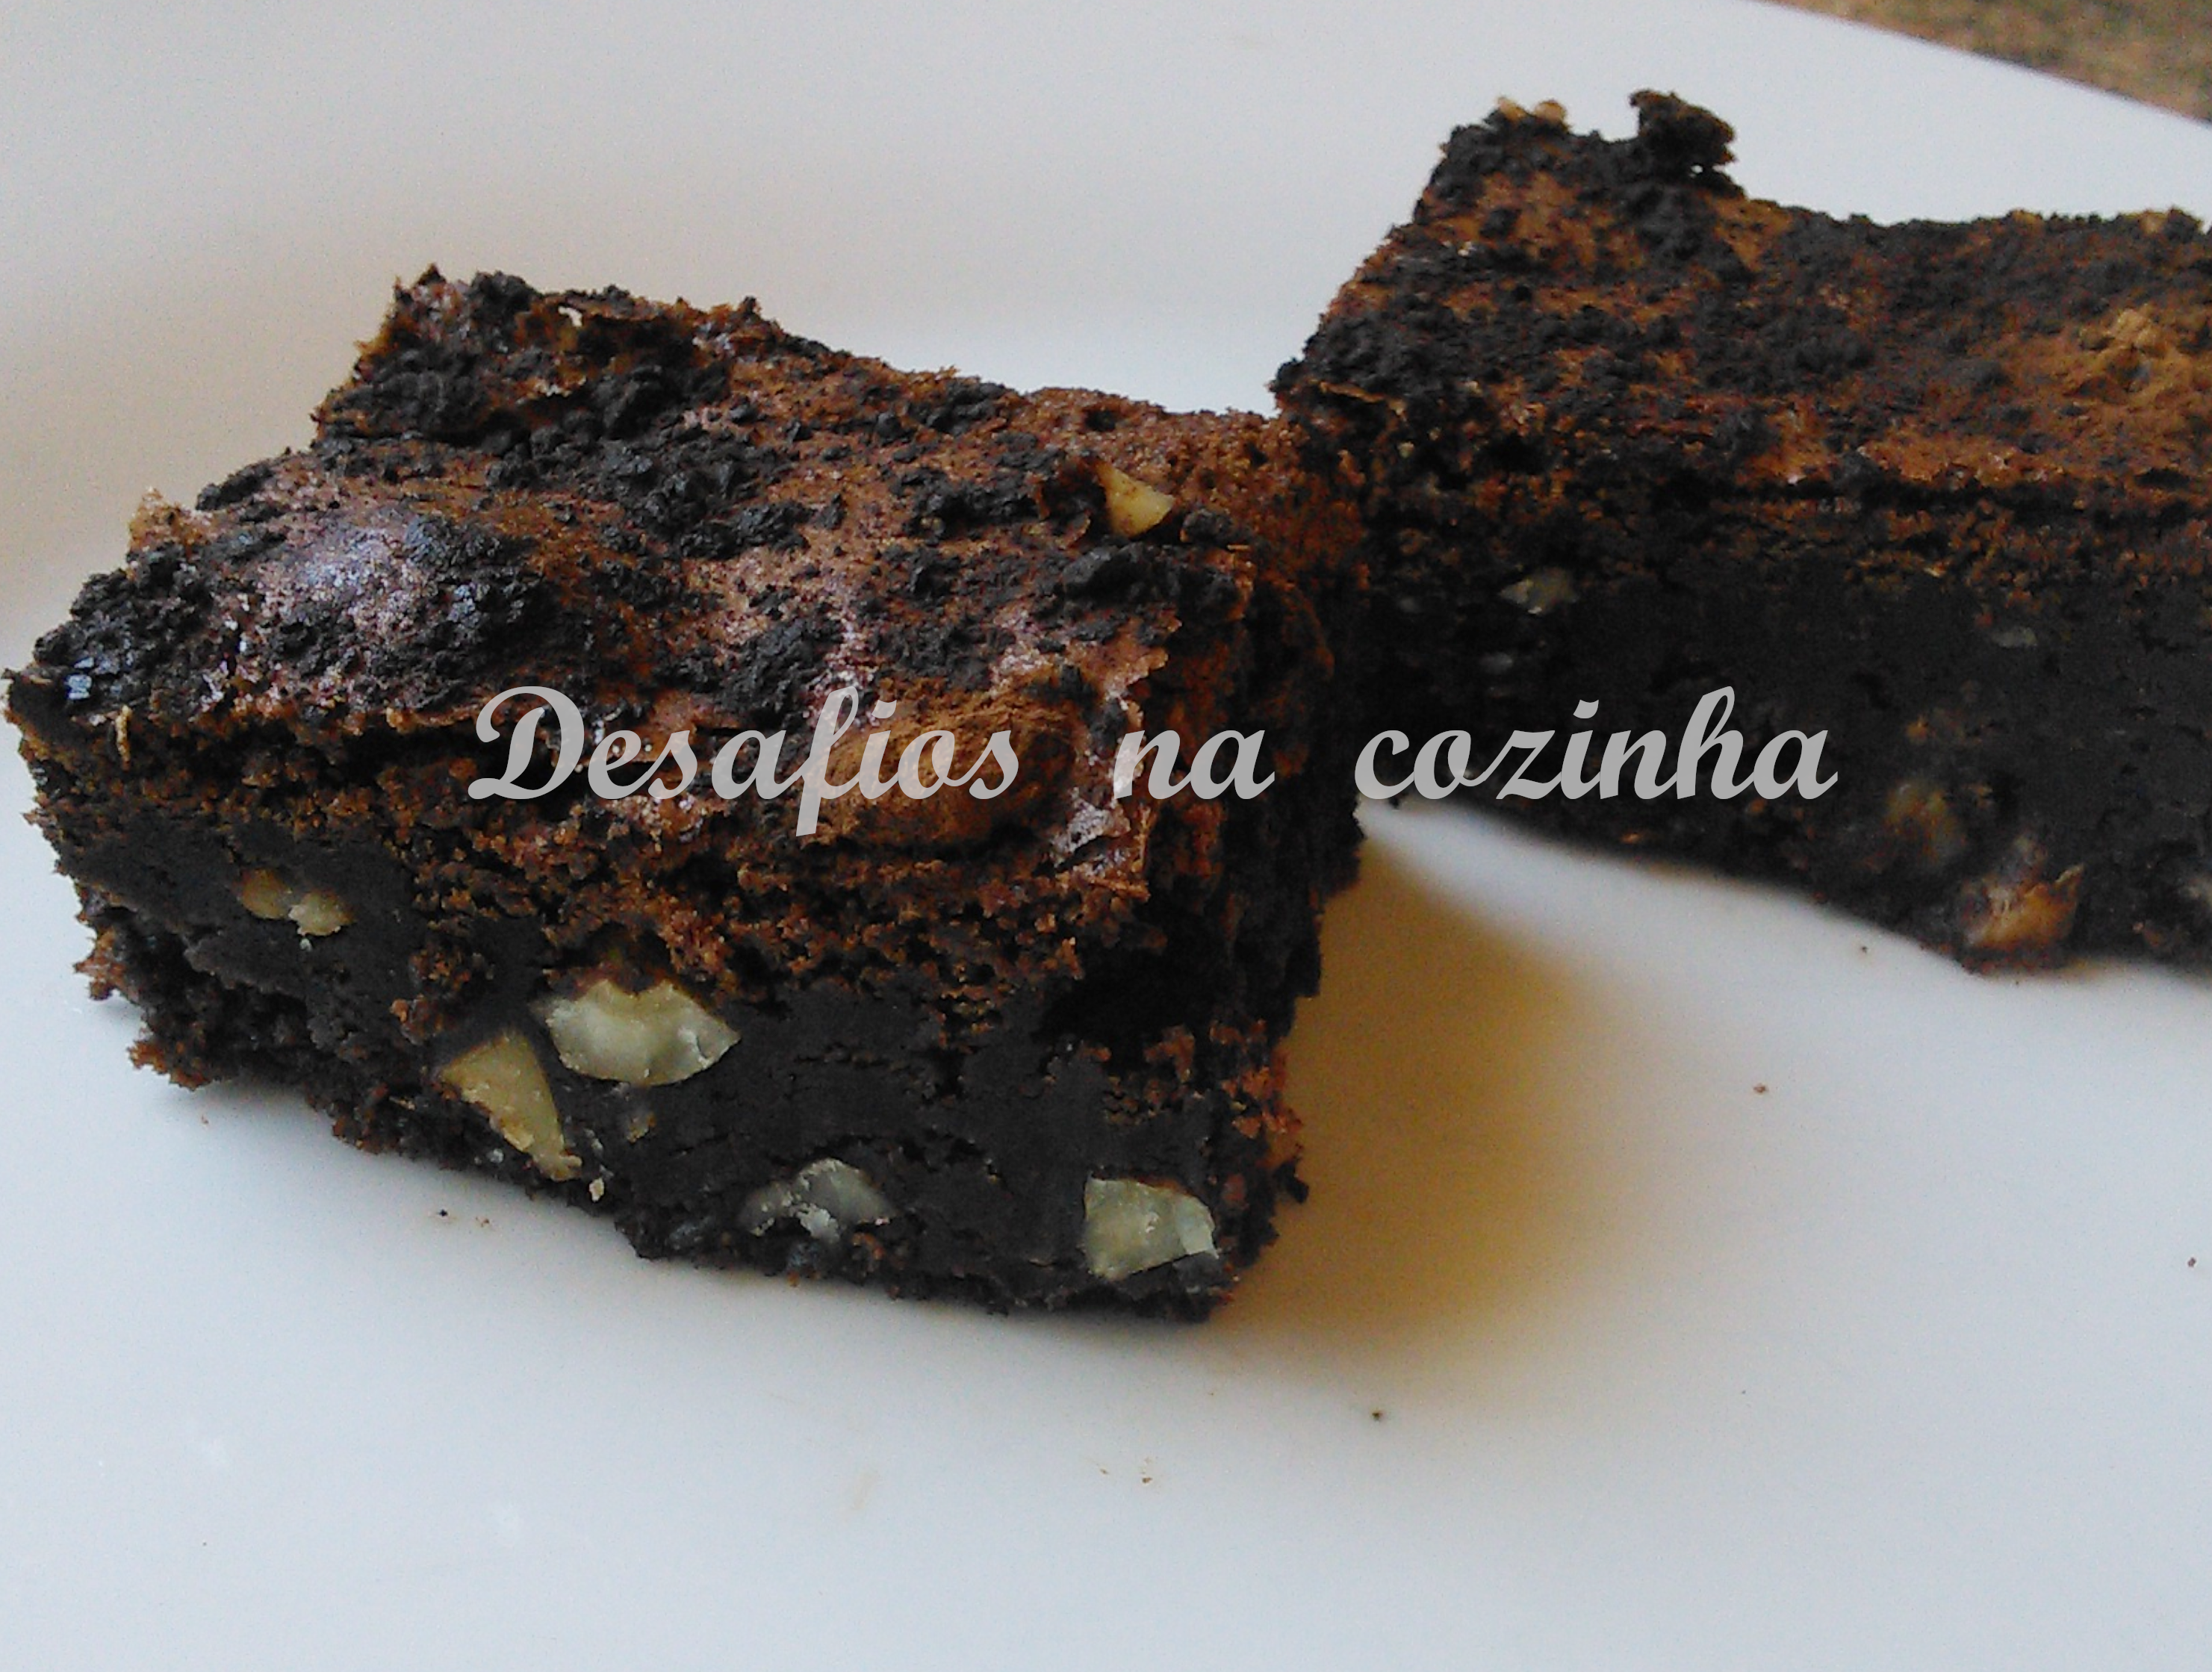 Quadrados brownies